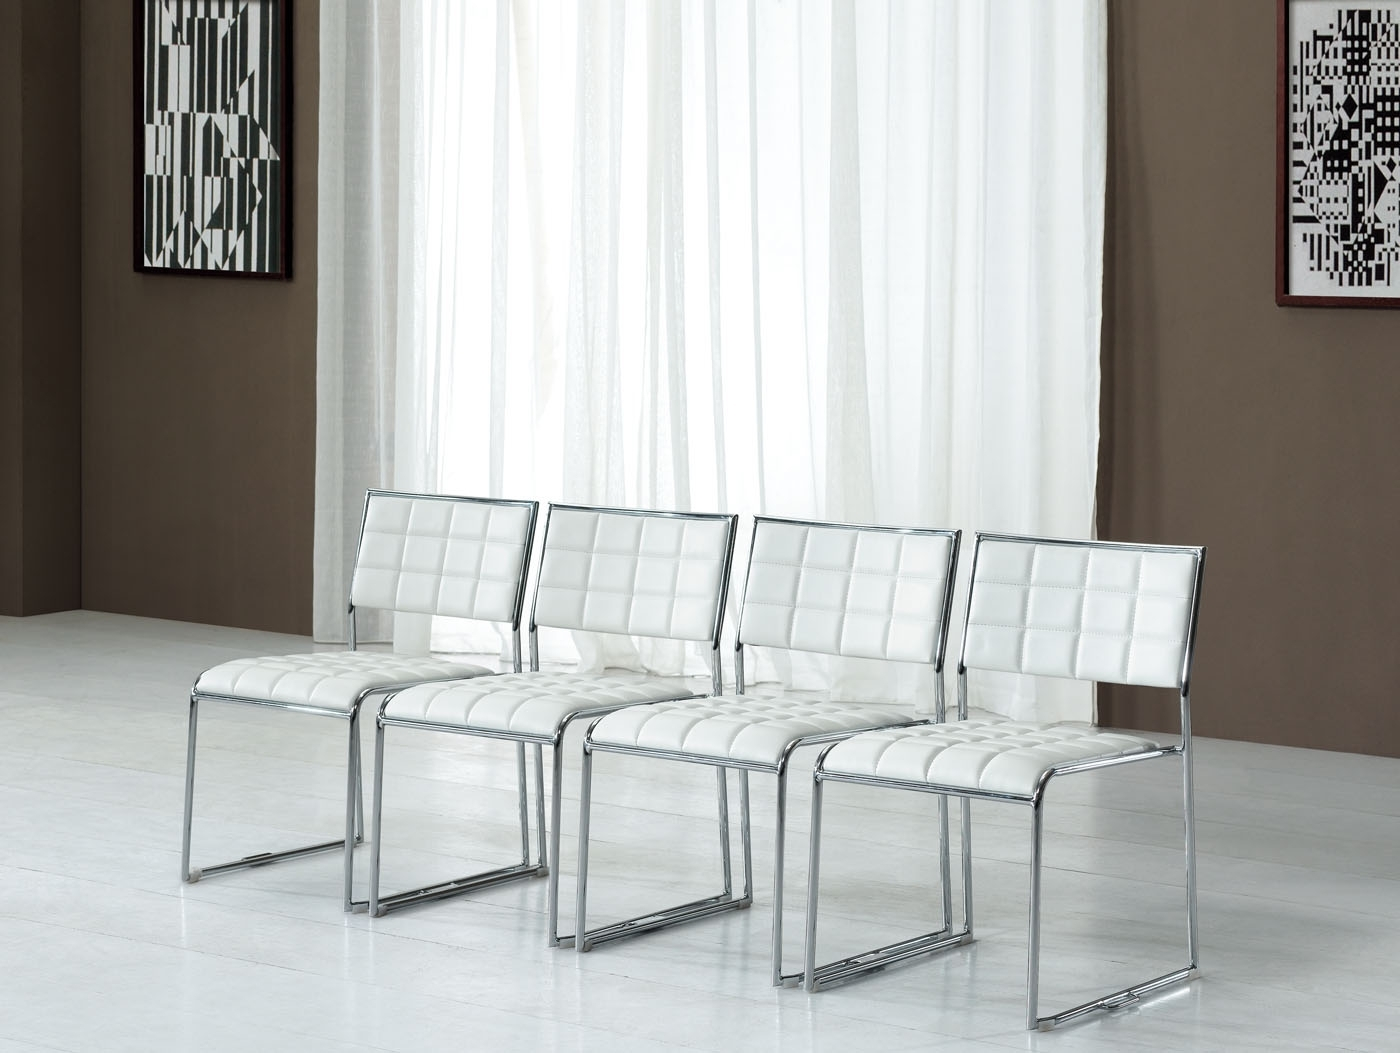 Chrome Leather Dining Chairs With Regard To 2017 Luxury Simplicity Of Modern White Dining Chairs (View 11 of 25)